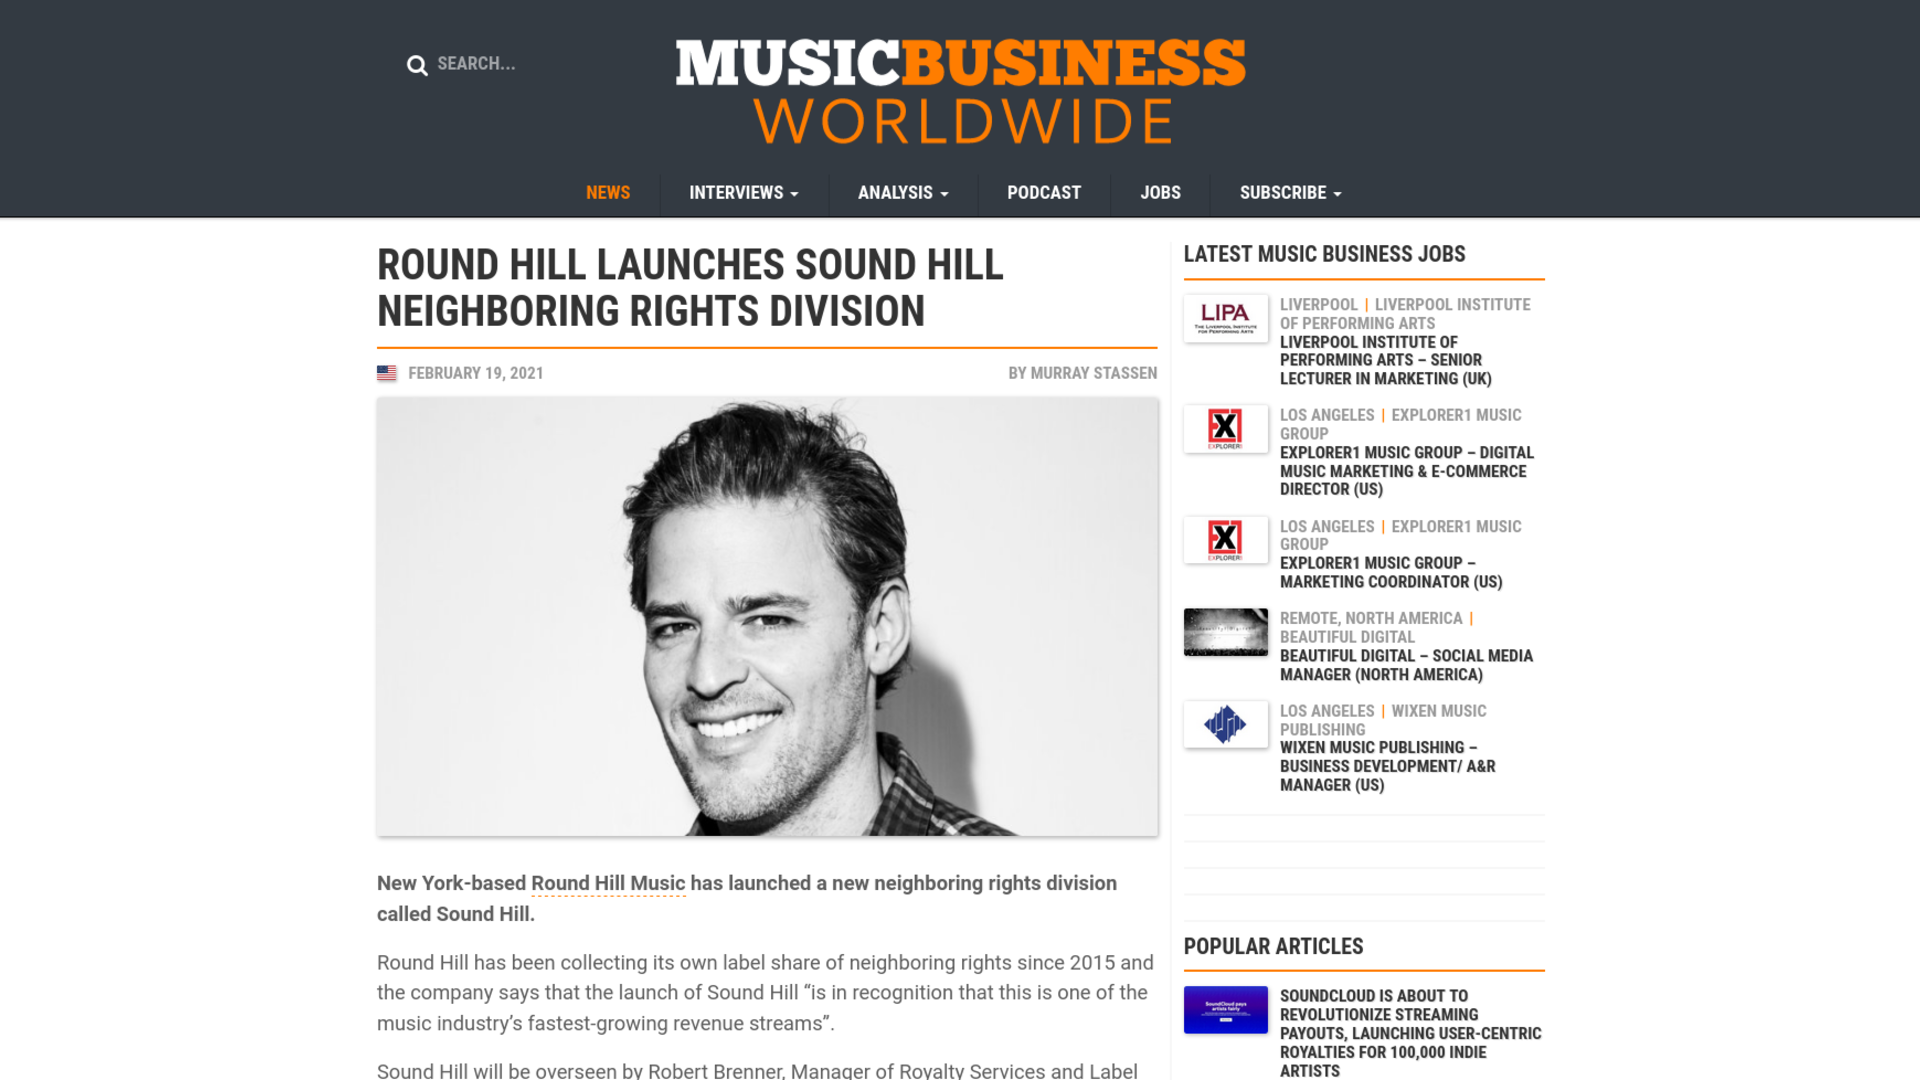 Fairness Rocks News ROUND HILL LAUNCHES SOUND HILL NEIGHBORING RIGHTS DIVISION